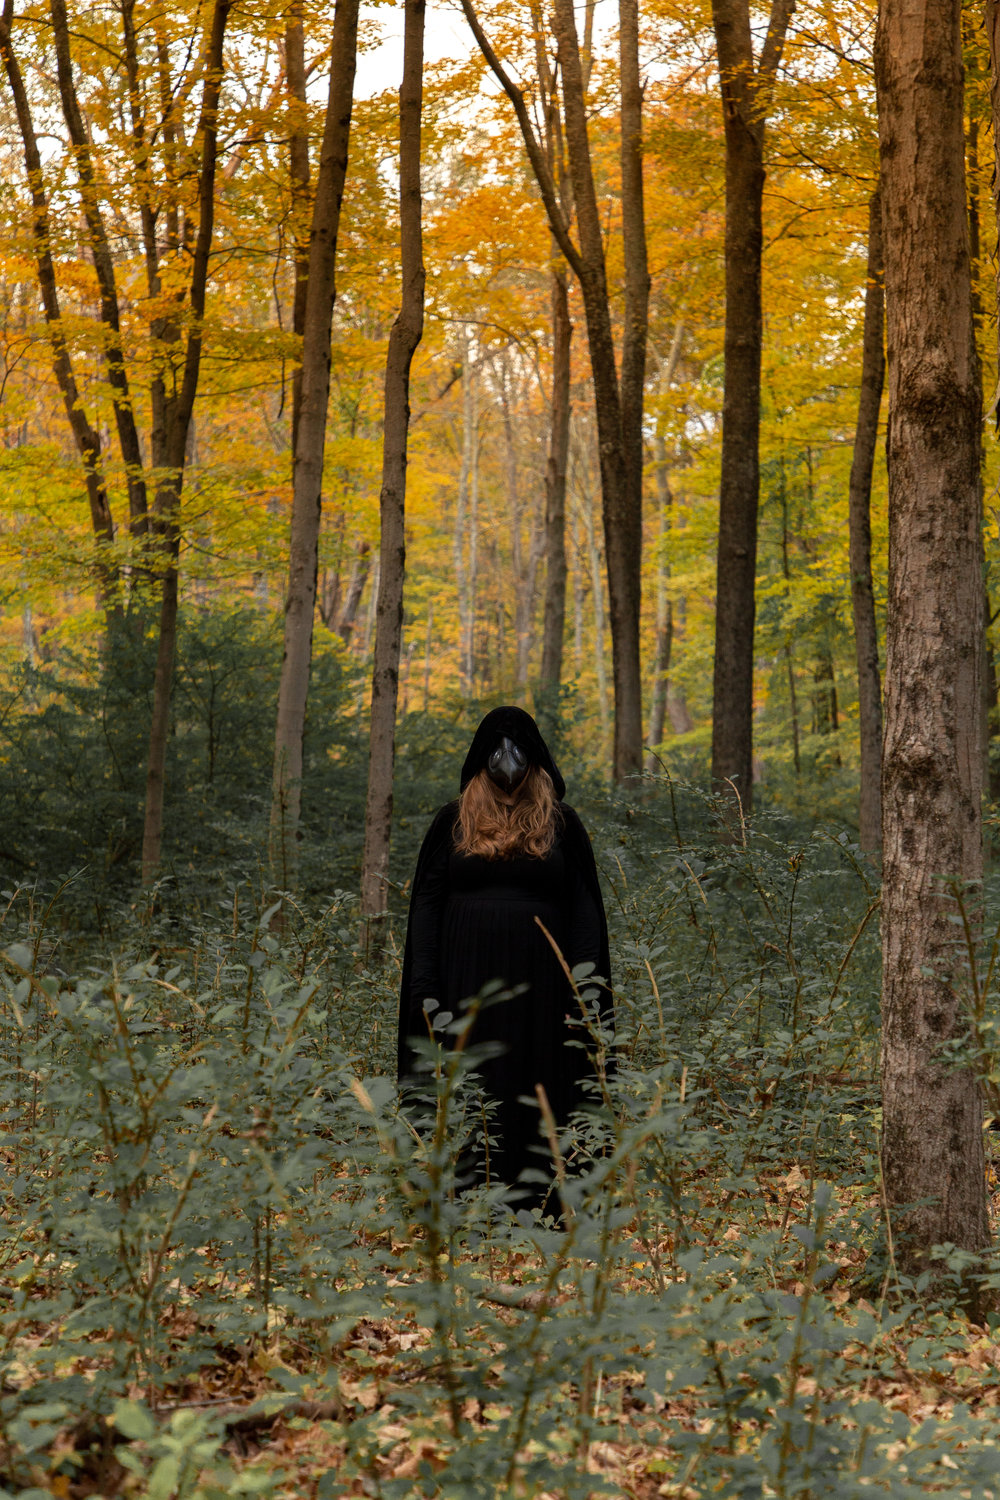 Woman dressed in all black with long nose mask in woods of Hewitt, NJ. Photo taken by Laughing Heart Photography.